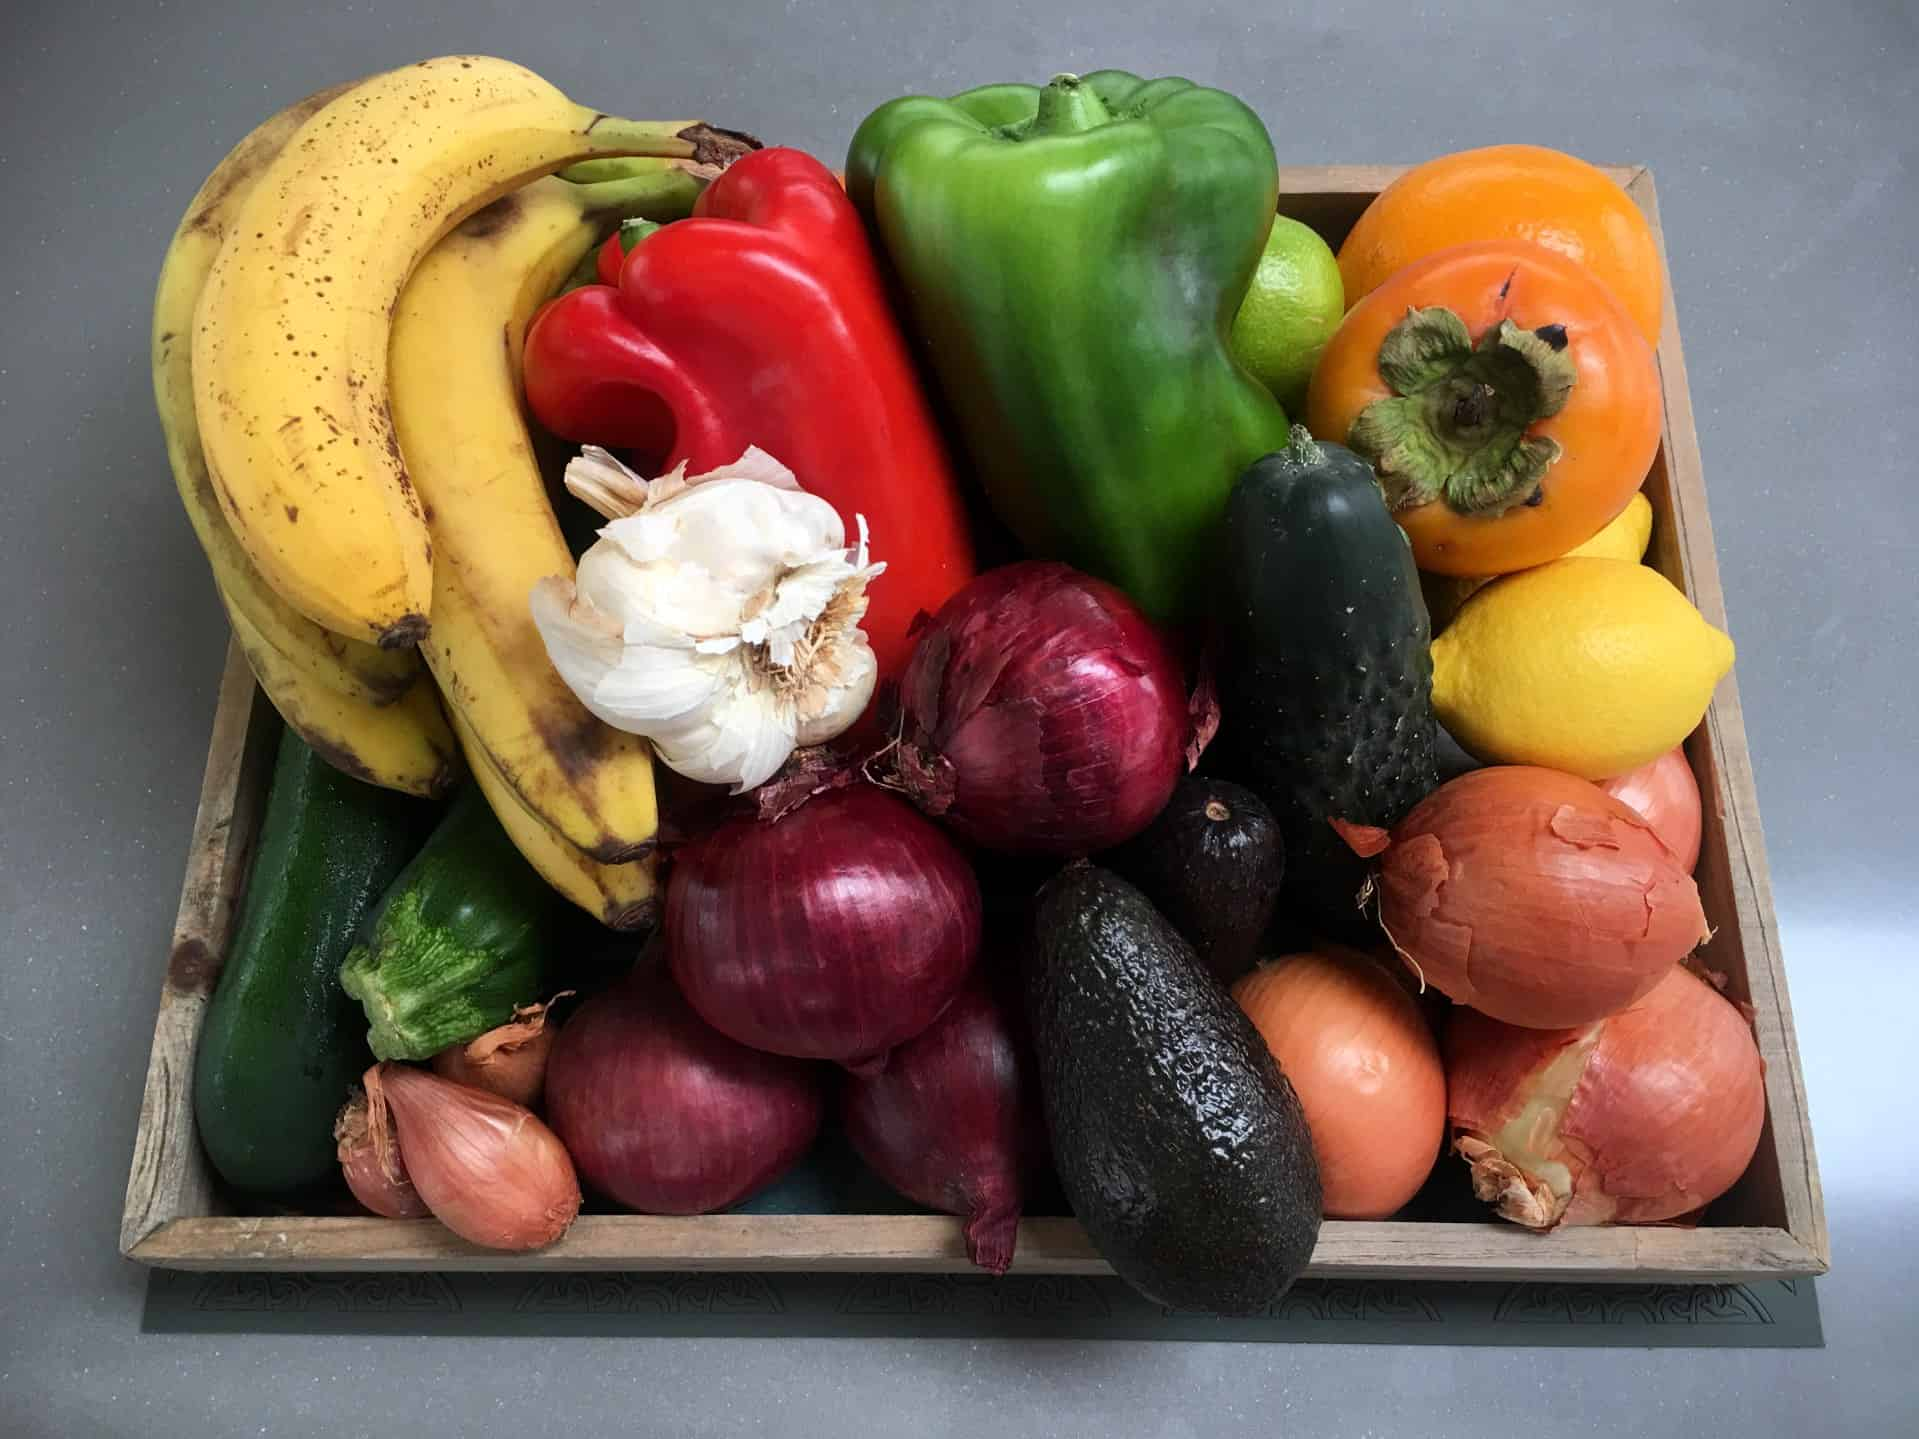 a box full of vegetables